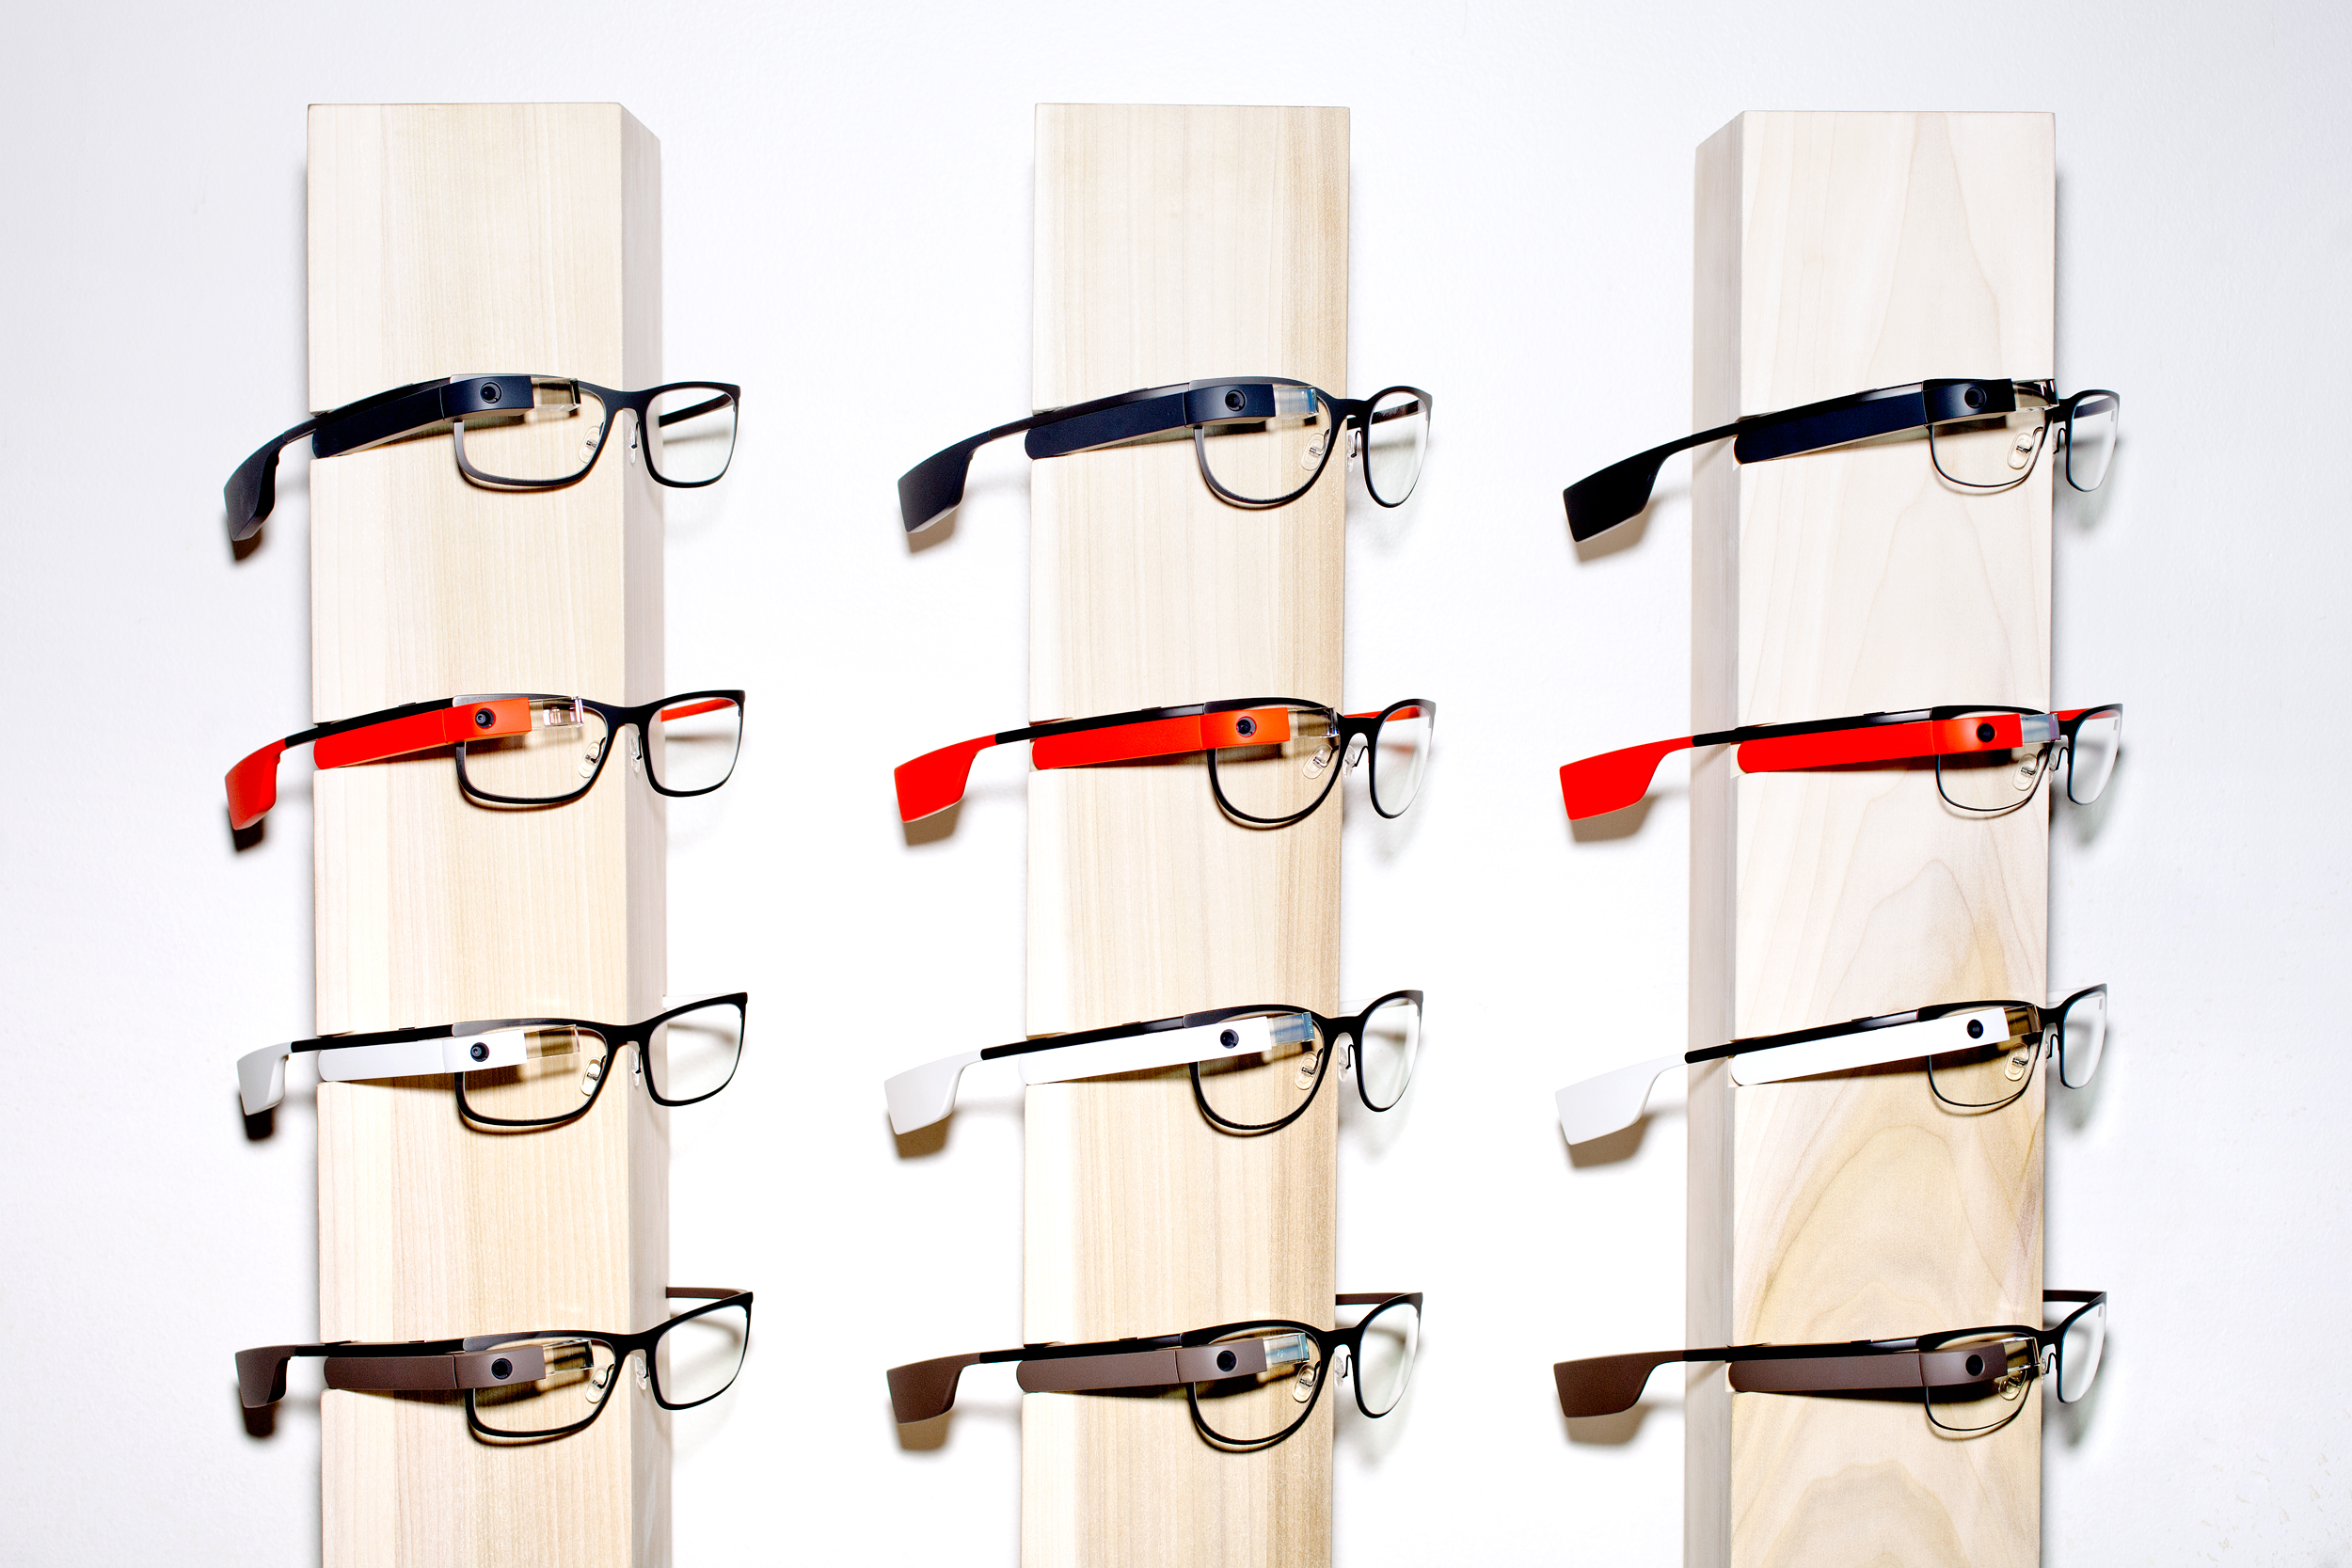 20140124-GOOGLE-GLASS-FRAMES-0185edit.jpg